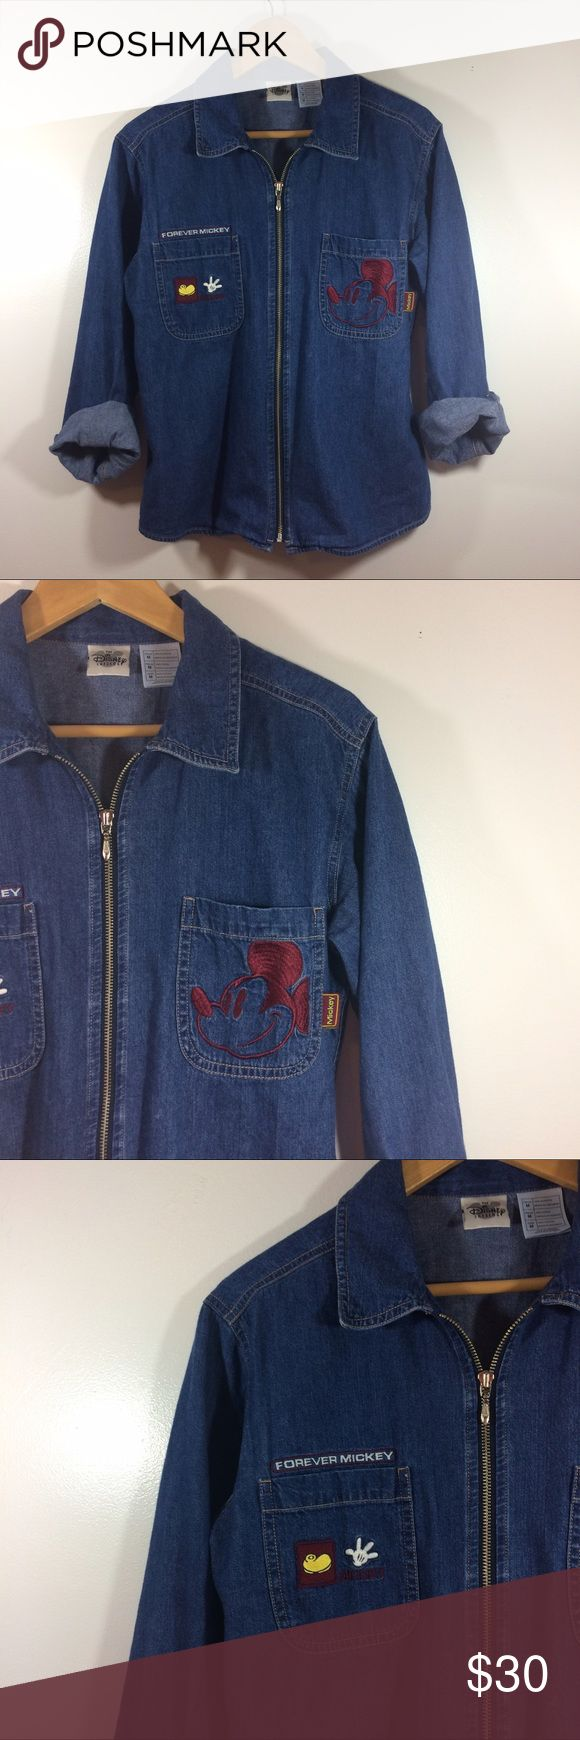 """VTG MICKEY FOREVER DISNEY denim zip up shirt M Size M """"Mickey forever"""" vintage zip up denim : jean shirt/jacket in excellent vintage condition with no holes, rips, stains, or other signs of wear. Disney Jackets & Coats Jean Jackets"""